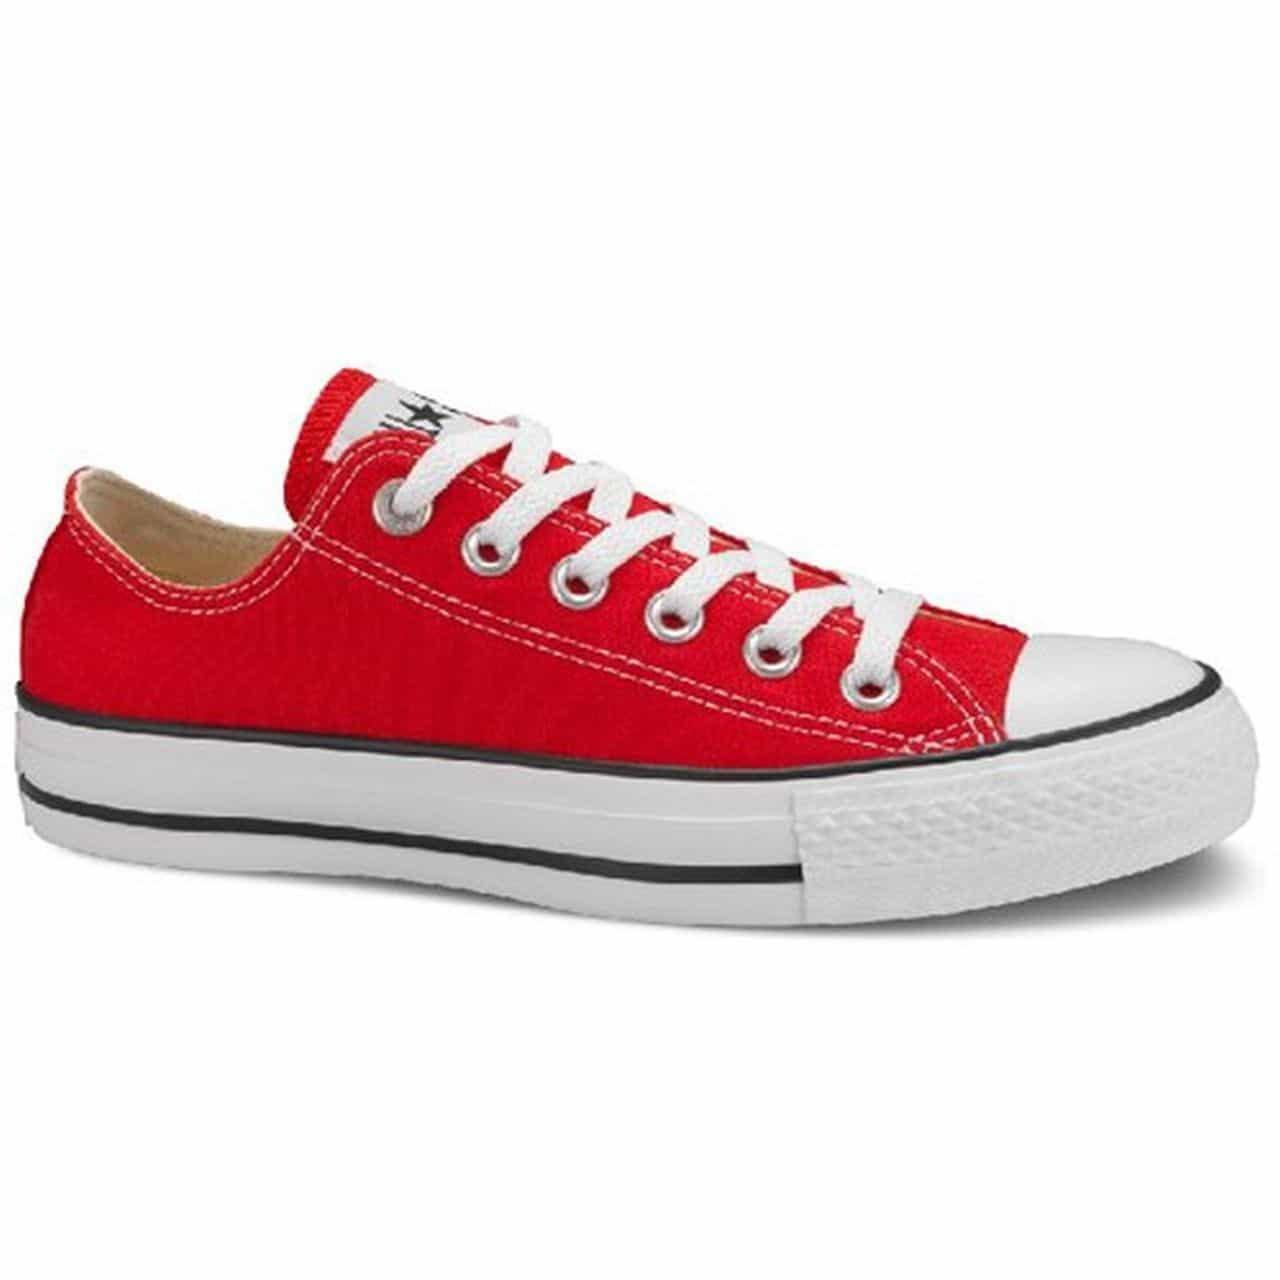 TENISI CONVERSE ALL STAR OX RED - M9696C